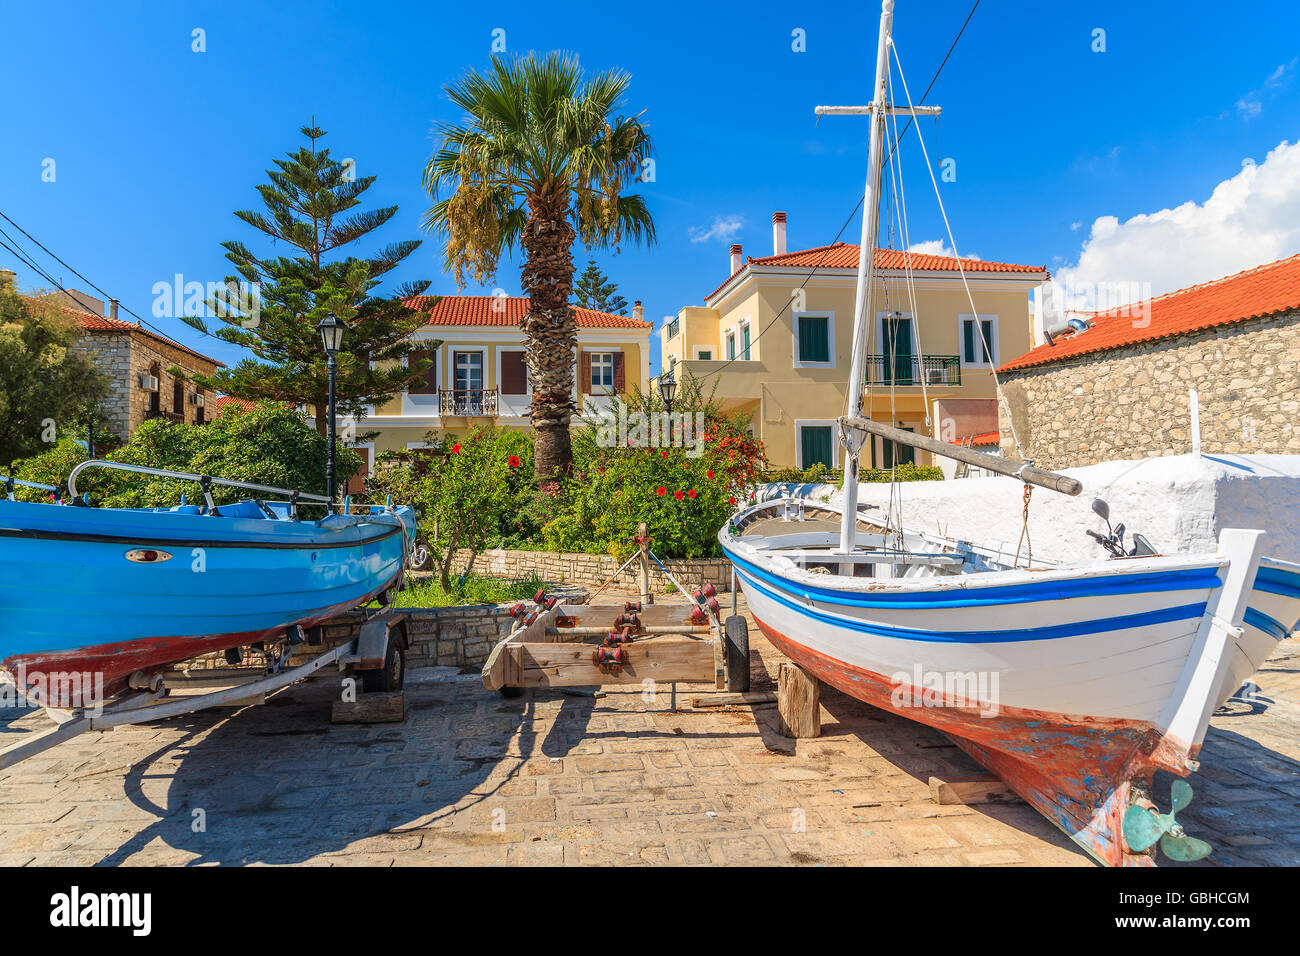 Fishing boats in dock of Pythagorion port with traditional colourful Greek houses in background, Samos island, Greece Stock Photo